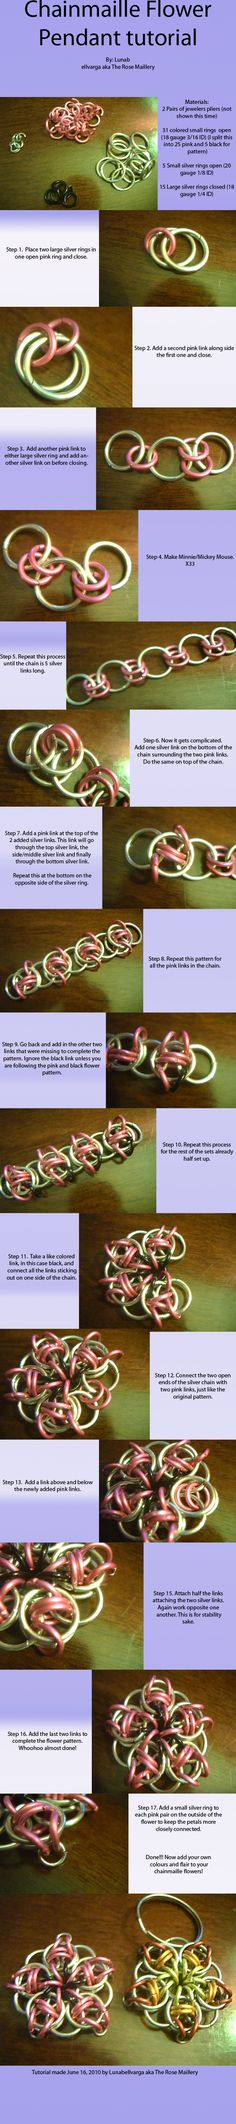 Chainmaille flower tutorial by ~lunabellvarga on deviantART